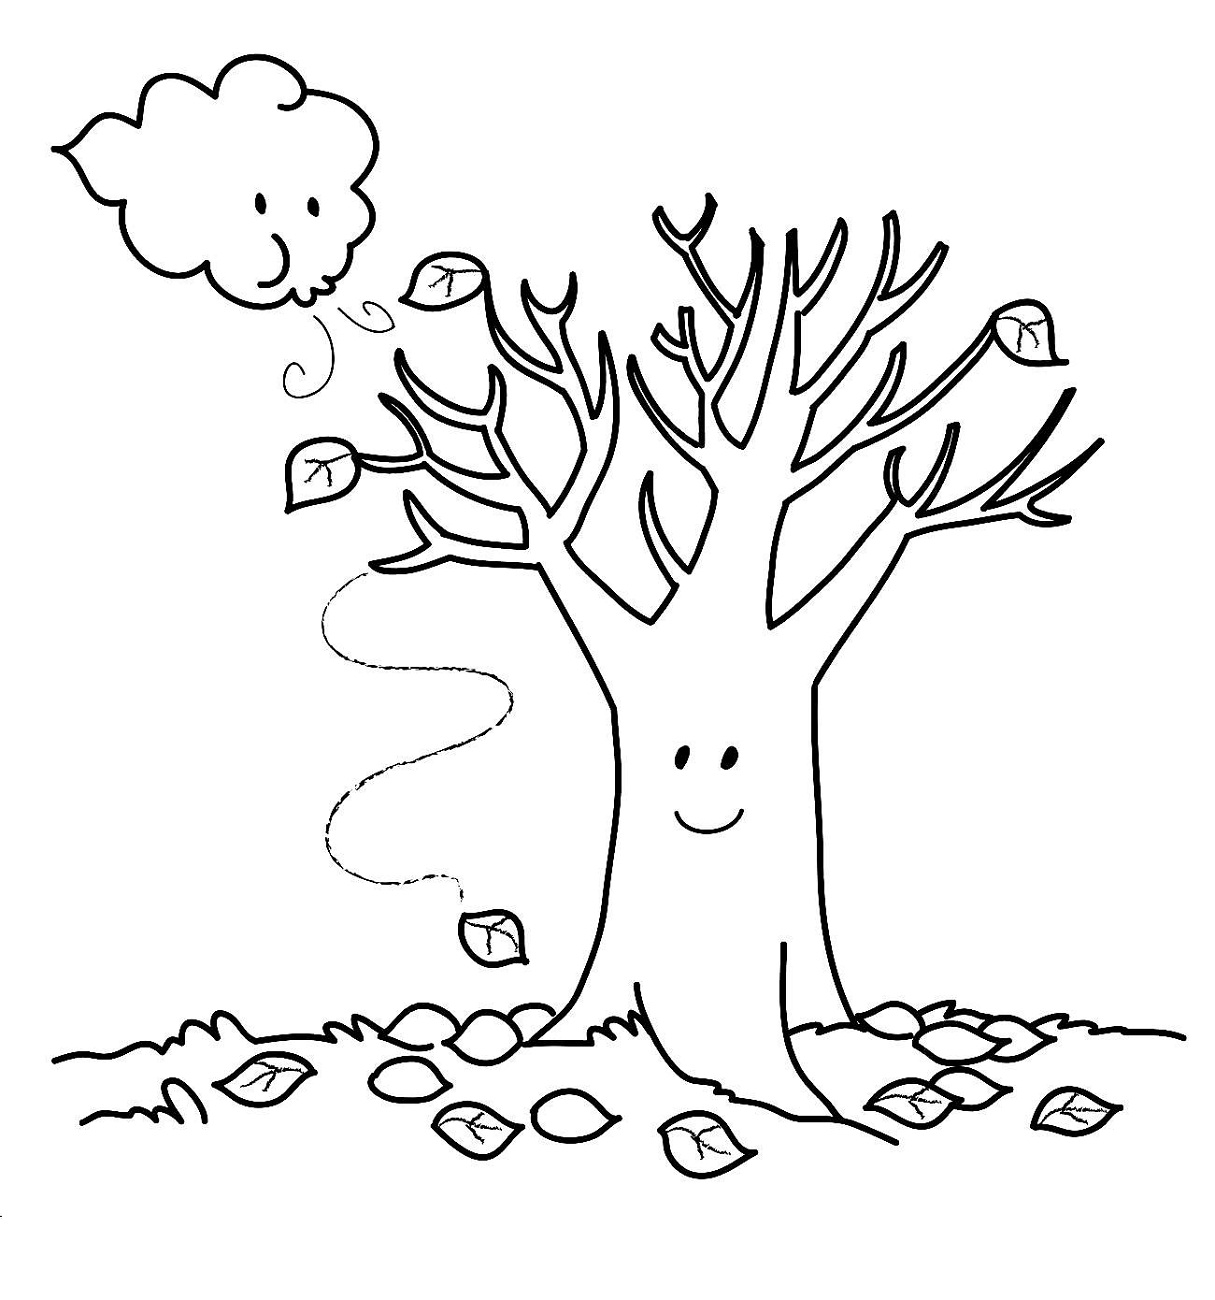 coloring fall pictures autumn coloring pages with pumpkin for kids seasons coloring pictures fall